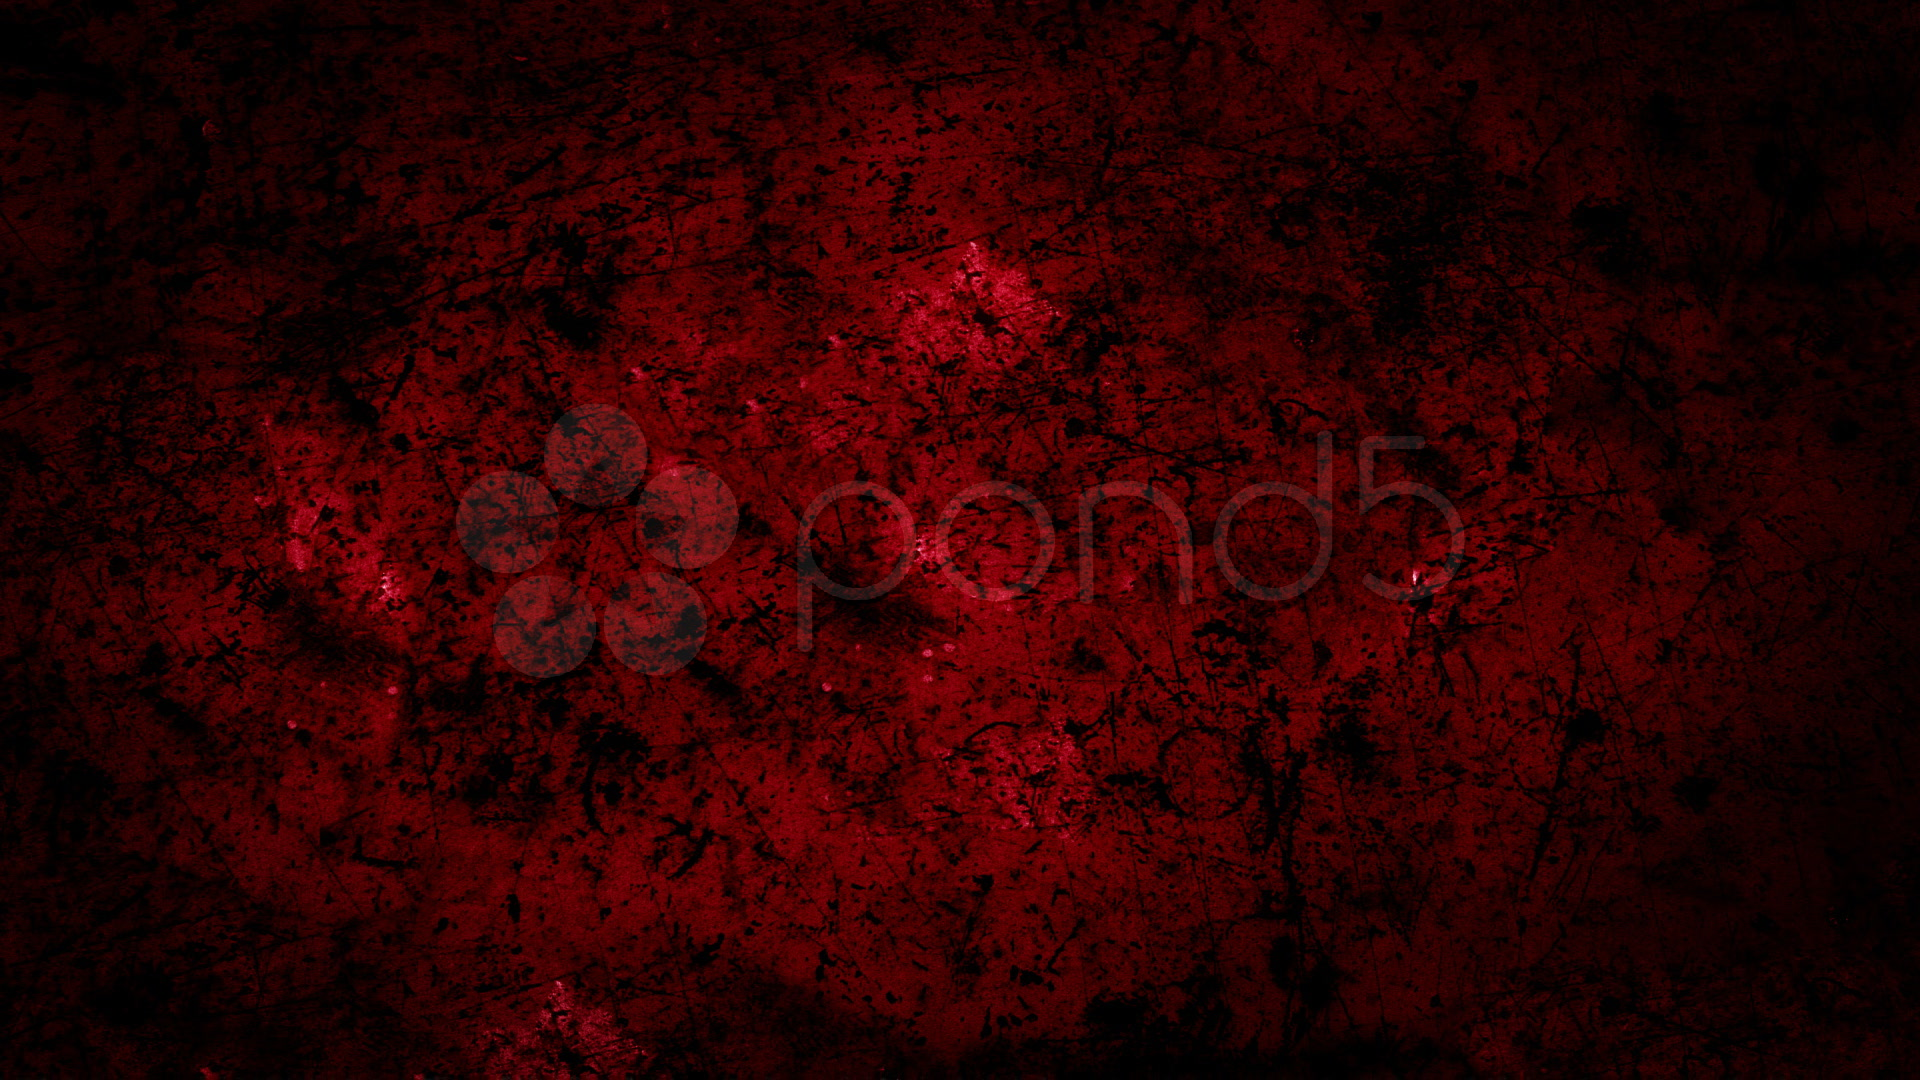 3d Depth Purple Abstract Wallpapers Red Grunge Scrolls Hd Amp 4k Stock Footage 305073 Pond5